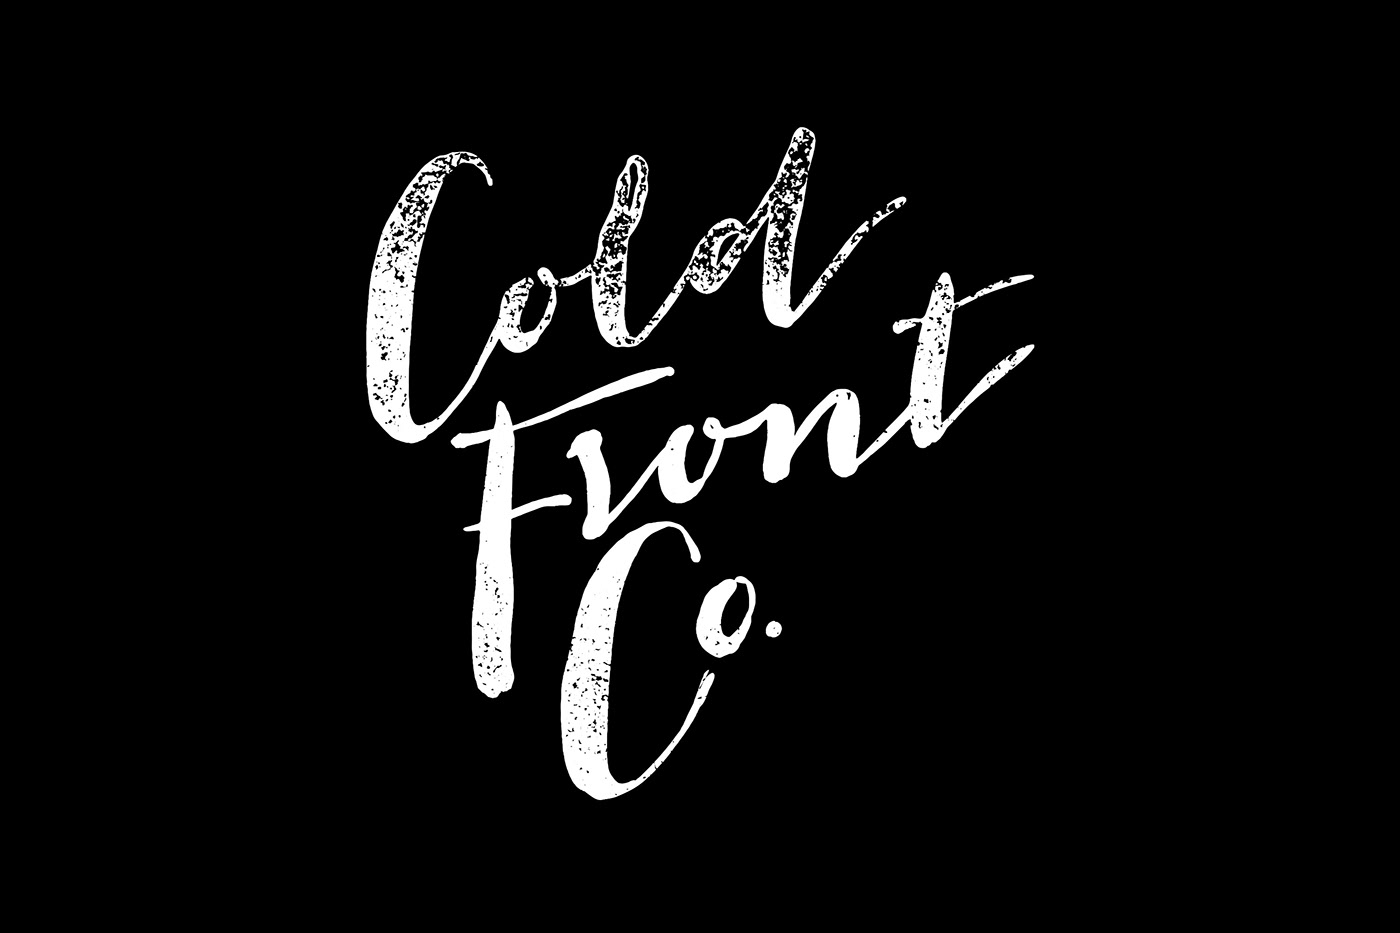 Cold Front Co. - Naming and Brand Identity